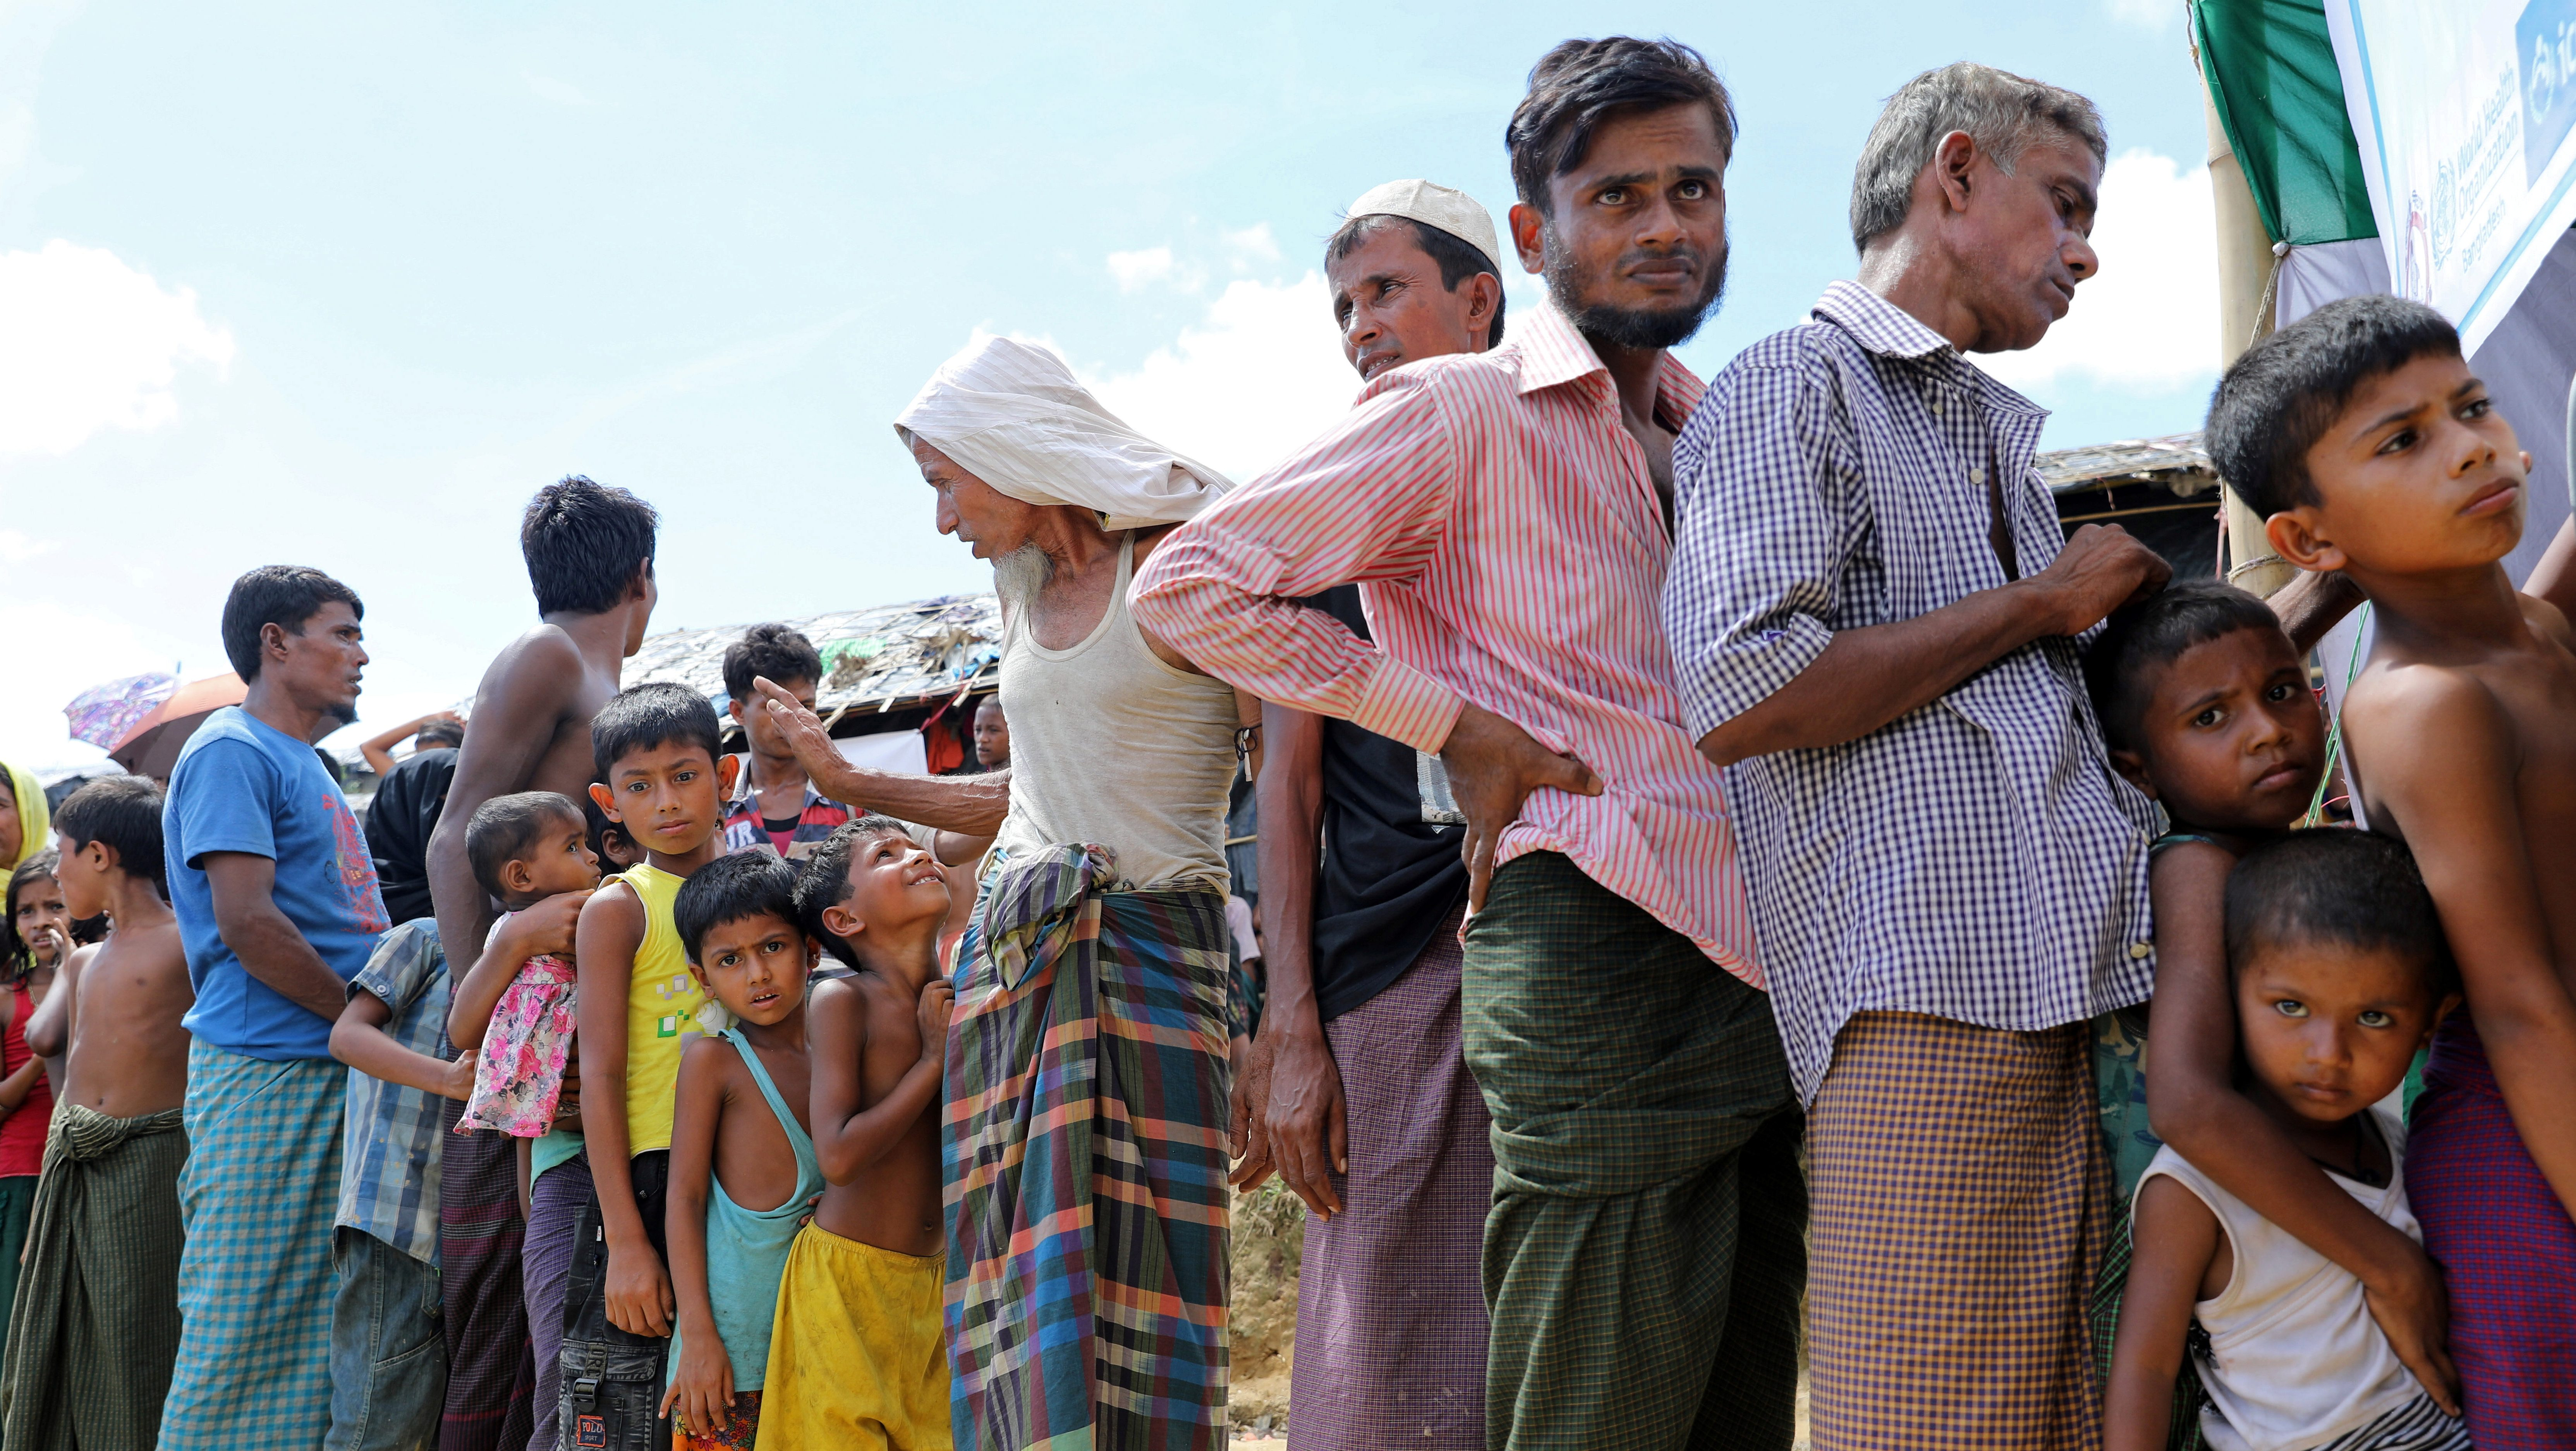 Rohingya refugees gather in front of a temporary healthcare center to get an oral cholera vaccine, distributed by the World Health Organisation (WHO), in the Jamtoli refugee camp in Cox's Bazar, Bangladesh October 10, 2017. REUTERS/Mohammad Ponir Hossain - RC188D3E6700